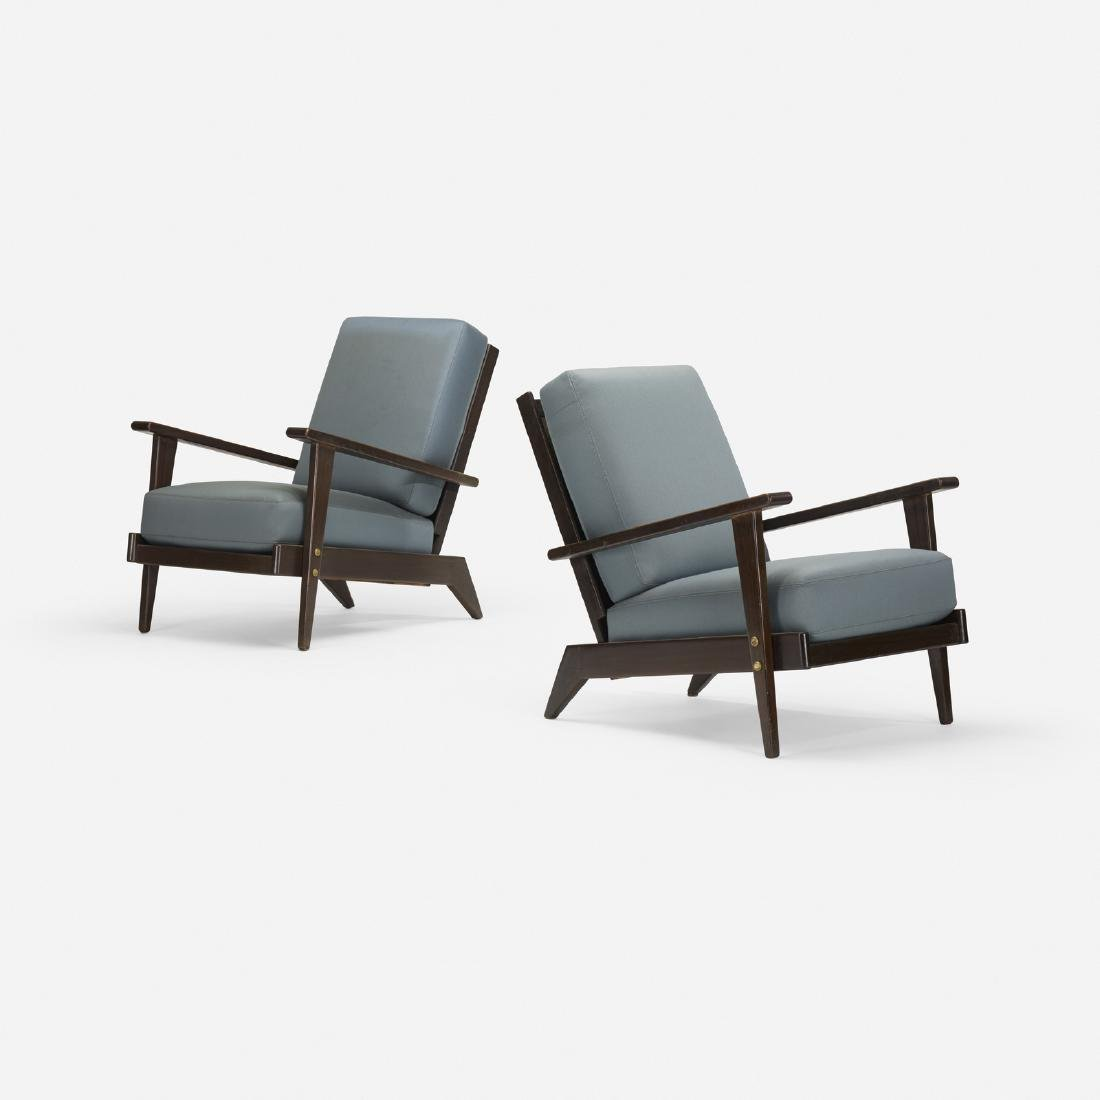 Rene Gabriel, lounge chairs, pair